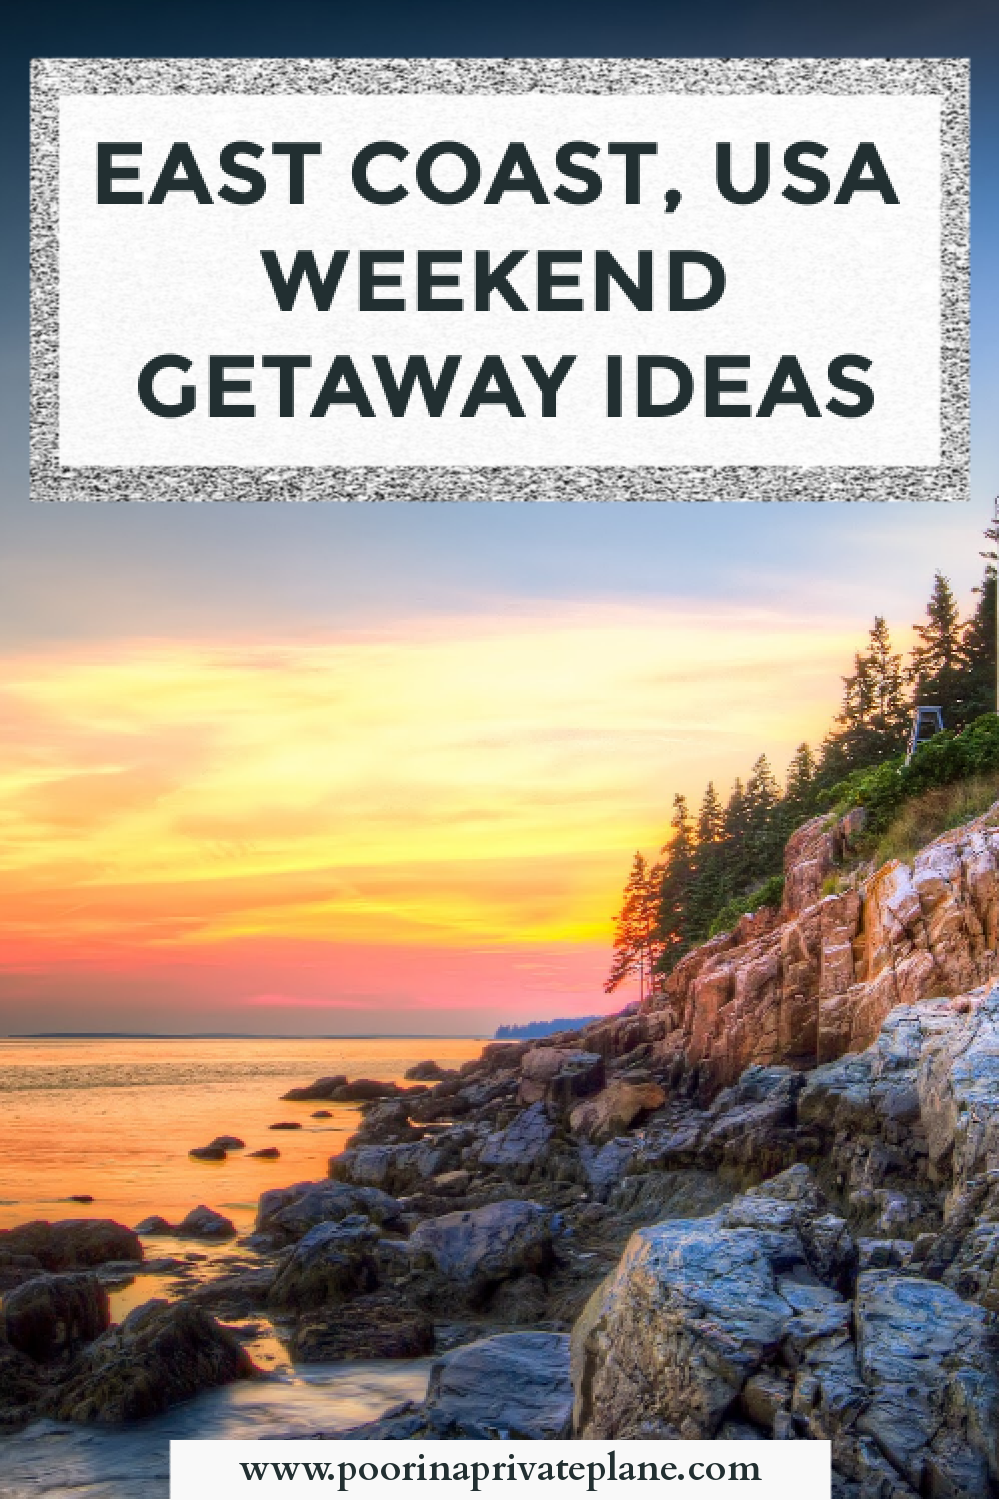 Weekend Getaway Ideas On The East Coast Of The Usa Looking For Vacation Spots Close To Home These Us Tr In 2020 Us Travel Destinations Dream Vacations Vacation Spots